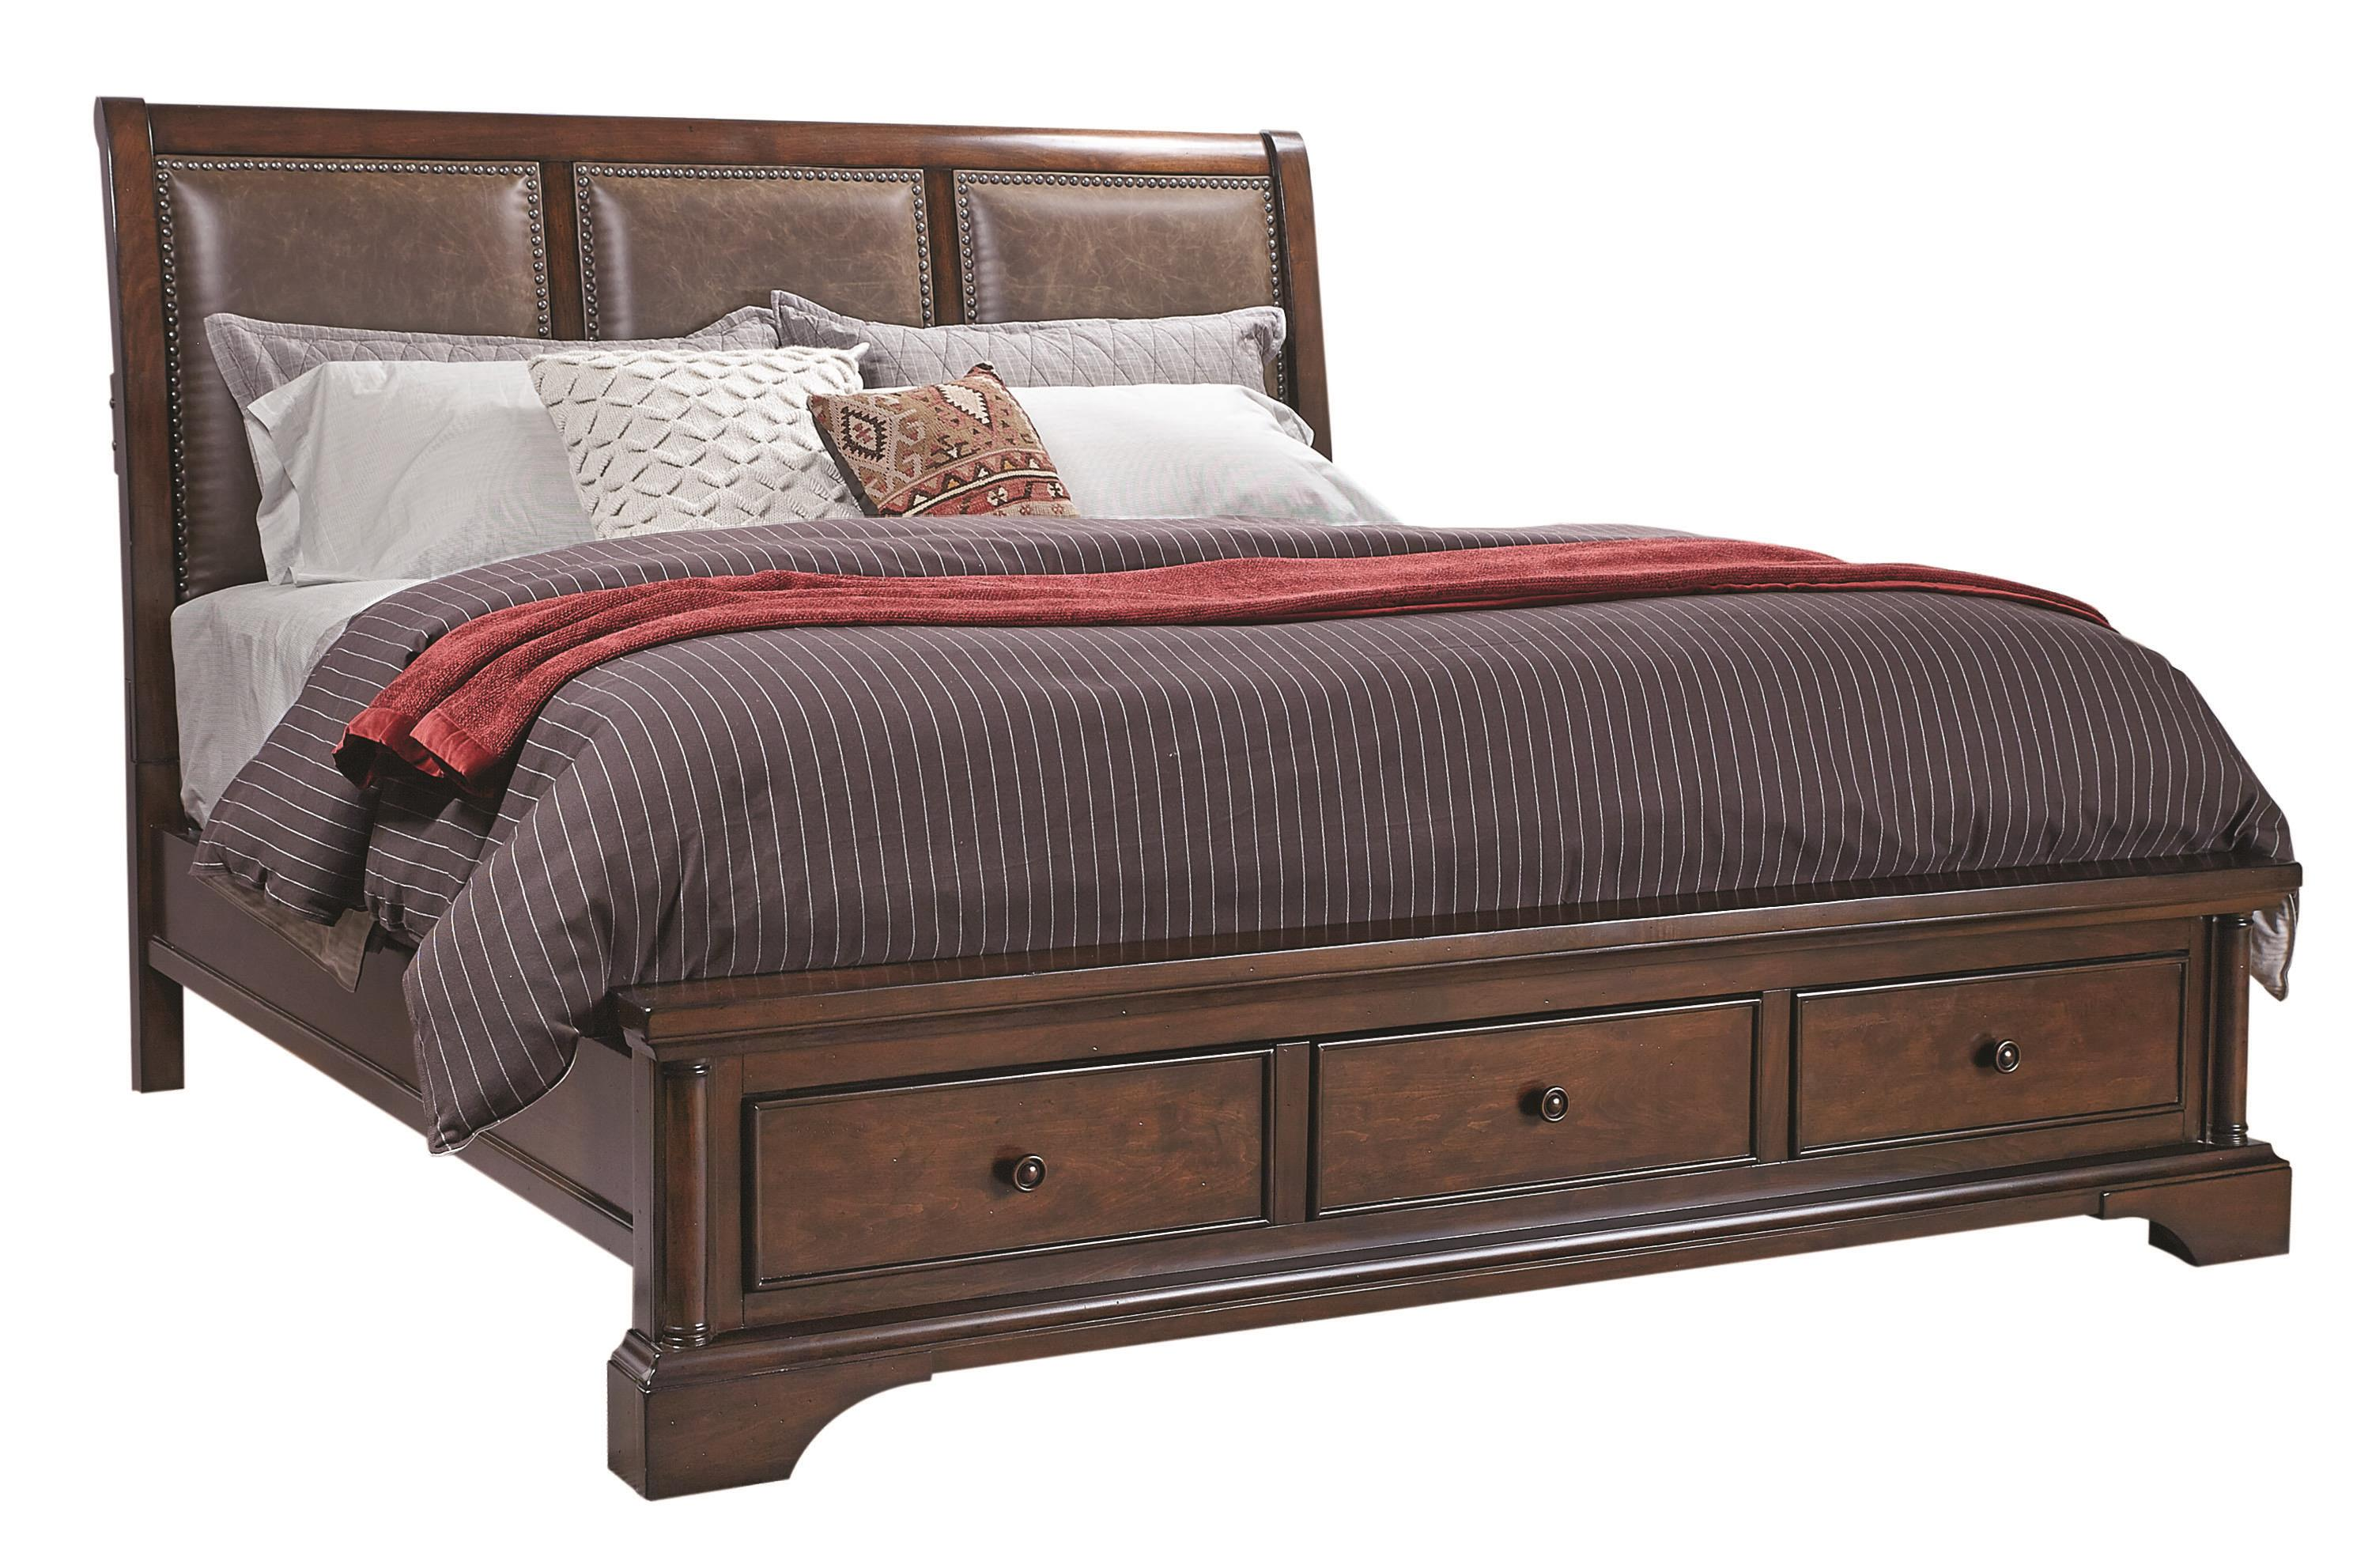 Aspenhome Bancroft King Bonded Leather Sleigh Storage Bed - Item Number: I08-425+406+407D